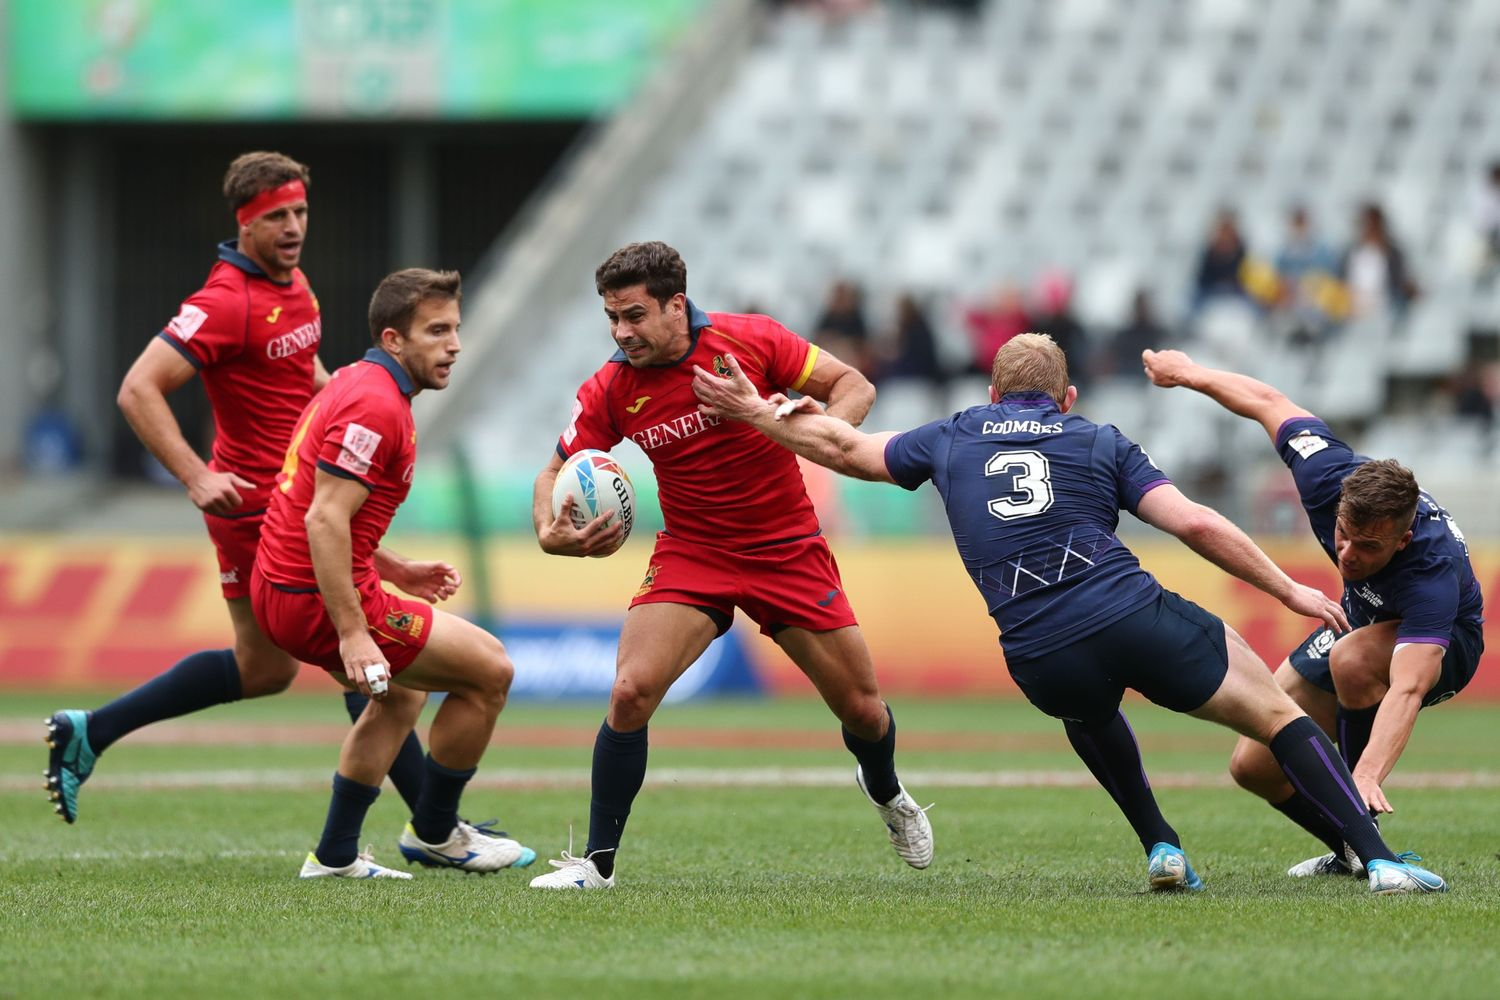 HSBC Cape Town Sevens 2019 - Men's